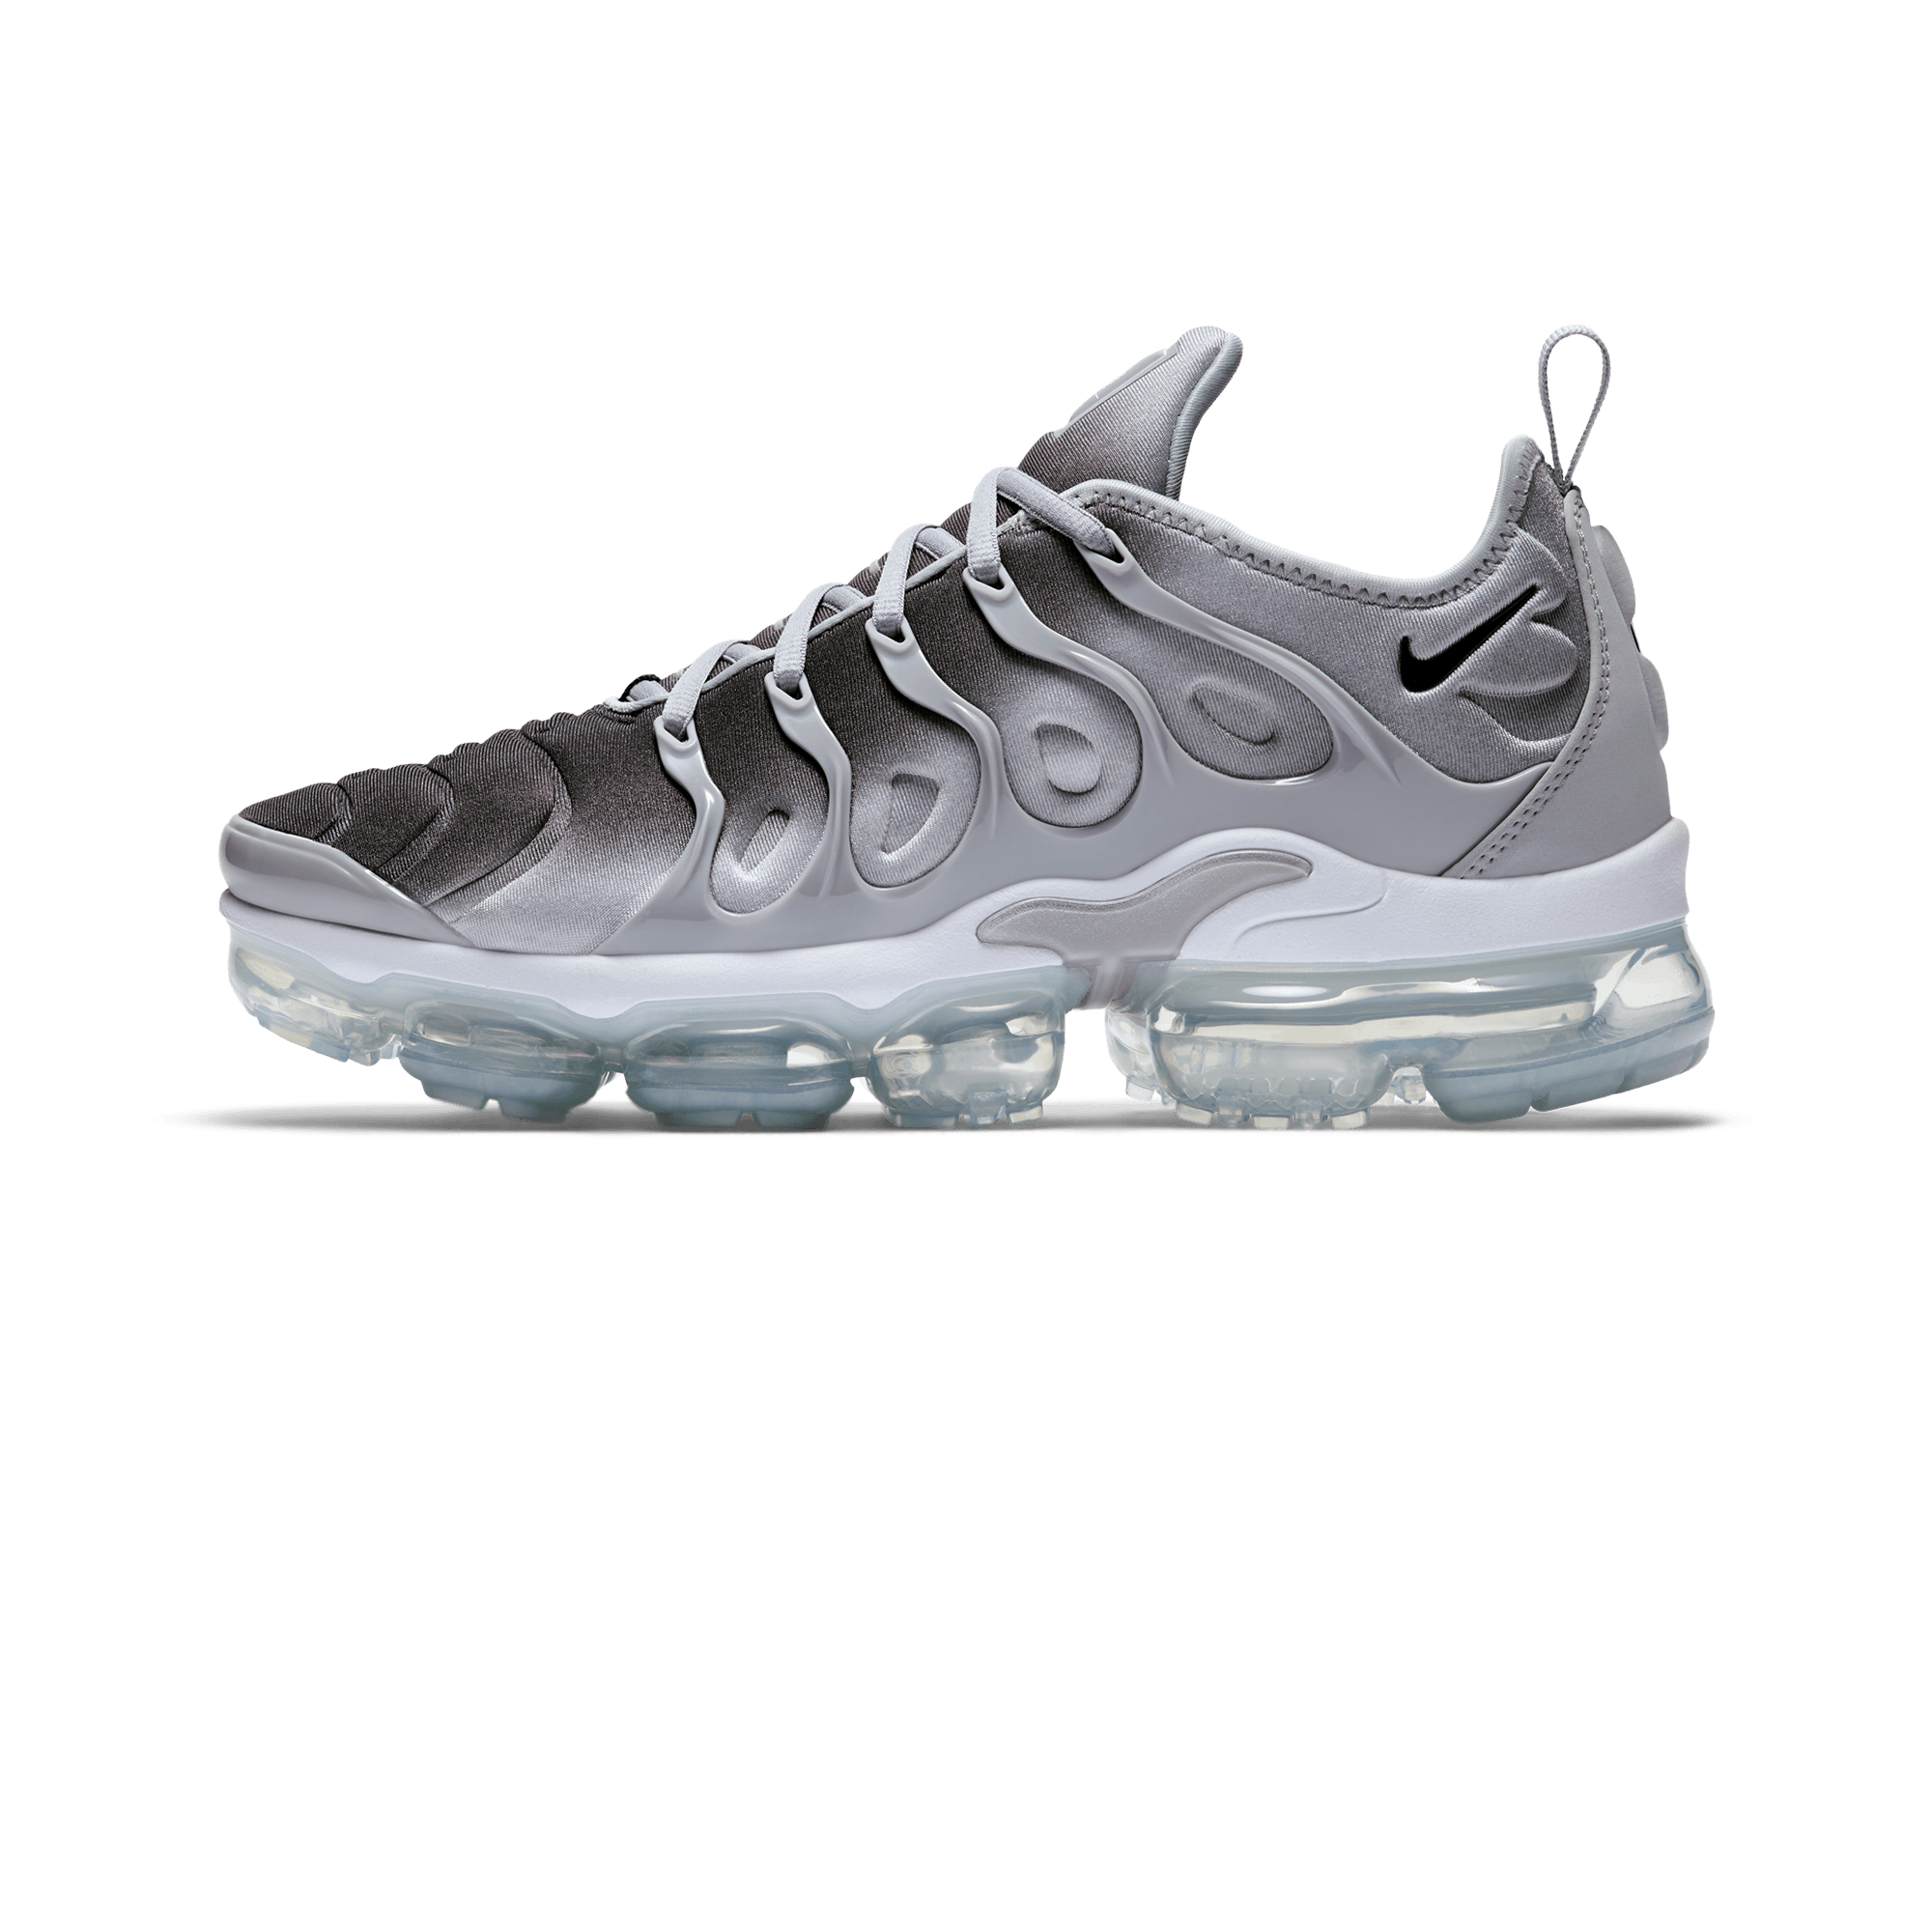 new arrival f060a 7b43b Nike Air Vapormax Plus wolf grey / black / white - Men | Holypopstore.com